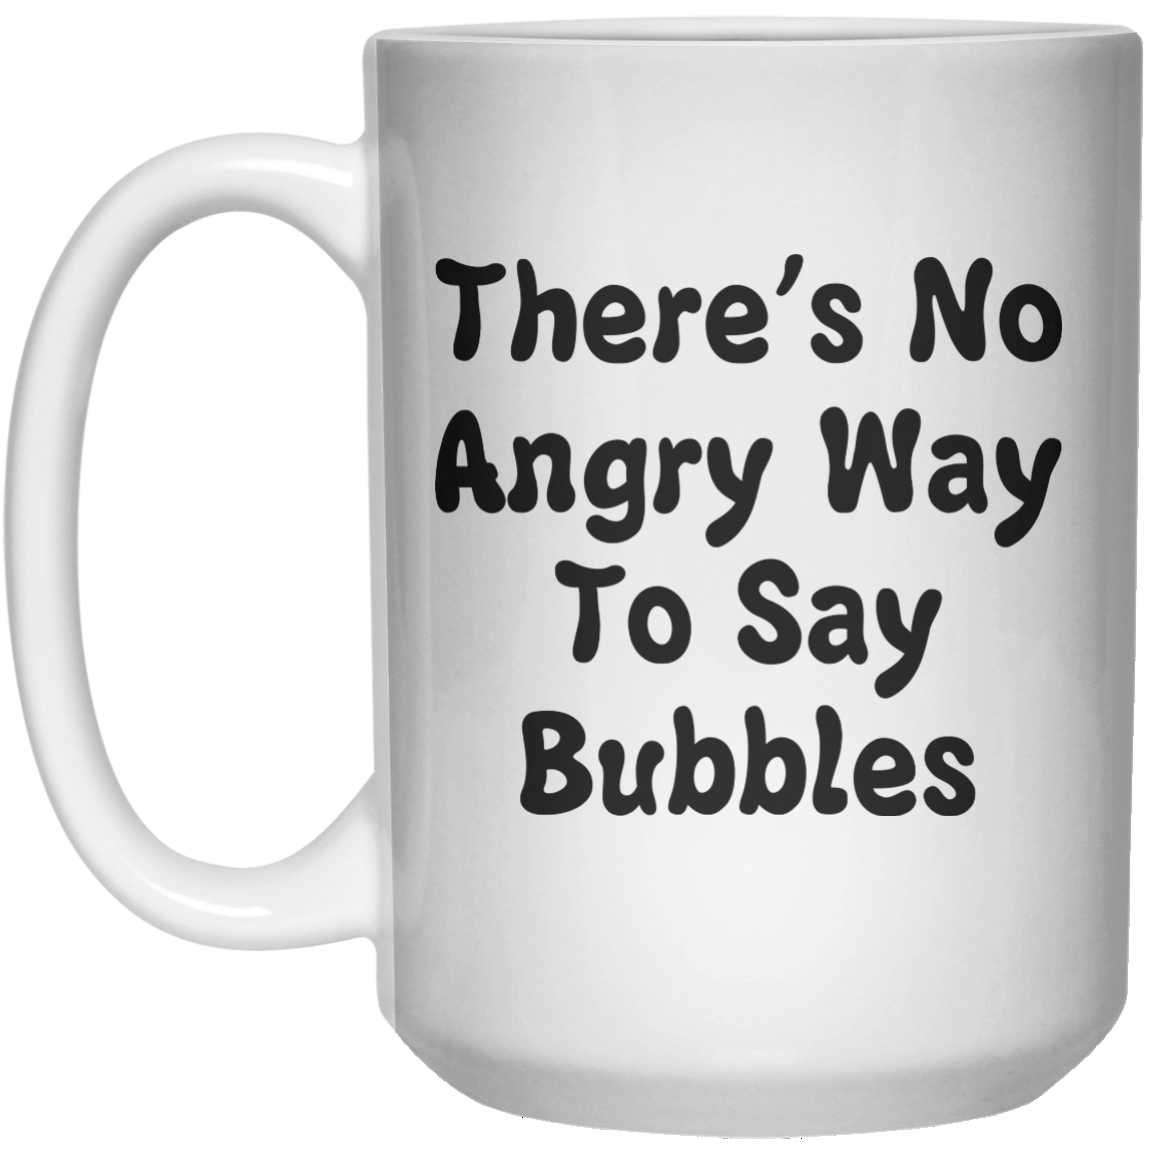 There's No Angry Way To Say Bubbles MUG  Mug - 15oz - Shirtoopia